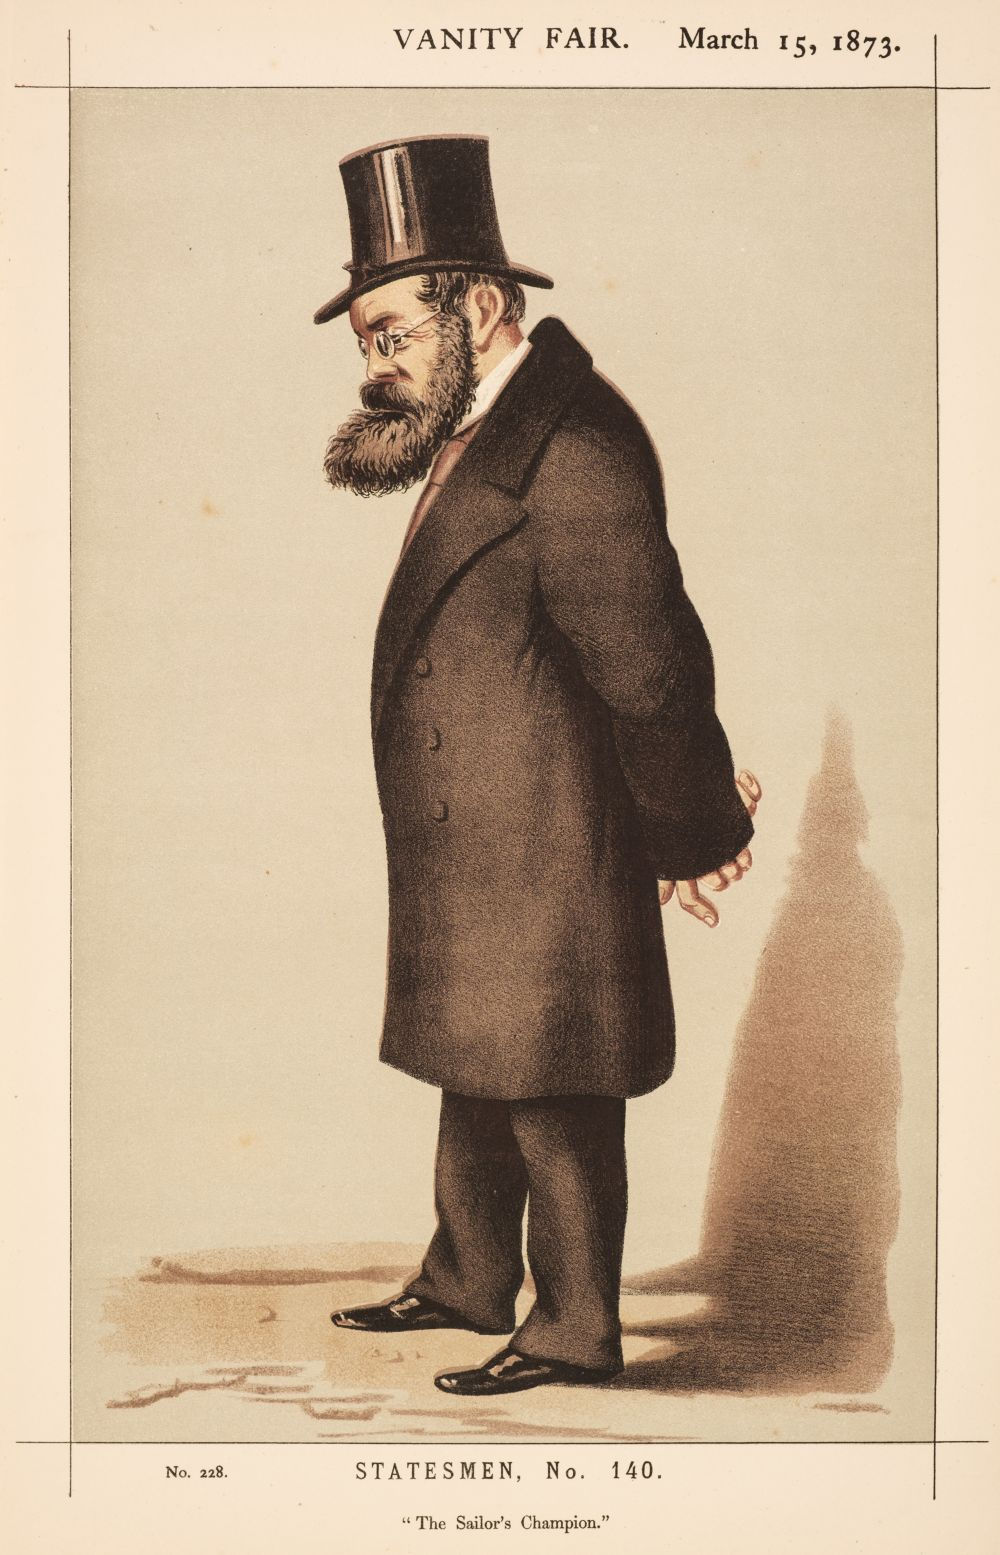 * Vanity Fair Caricatures. A collection of approximately 95 prints, 1869 -73